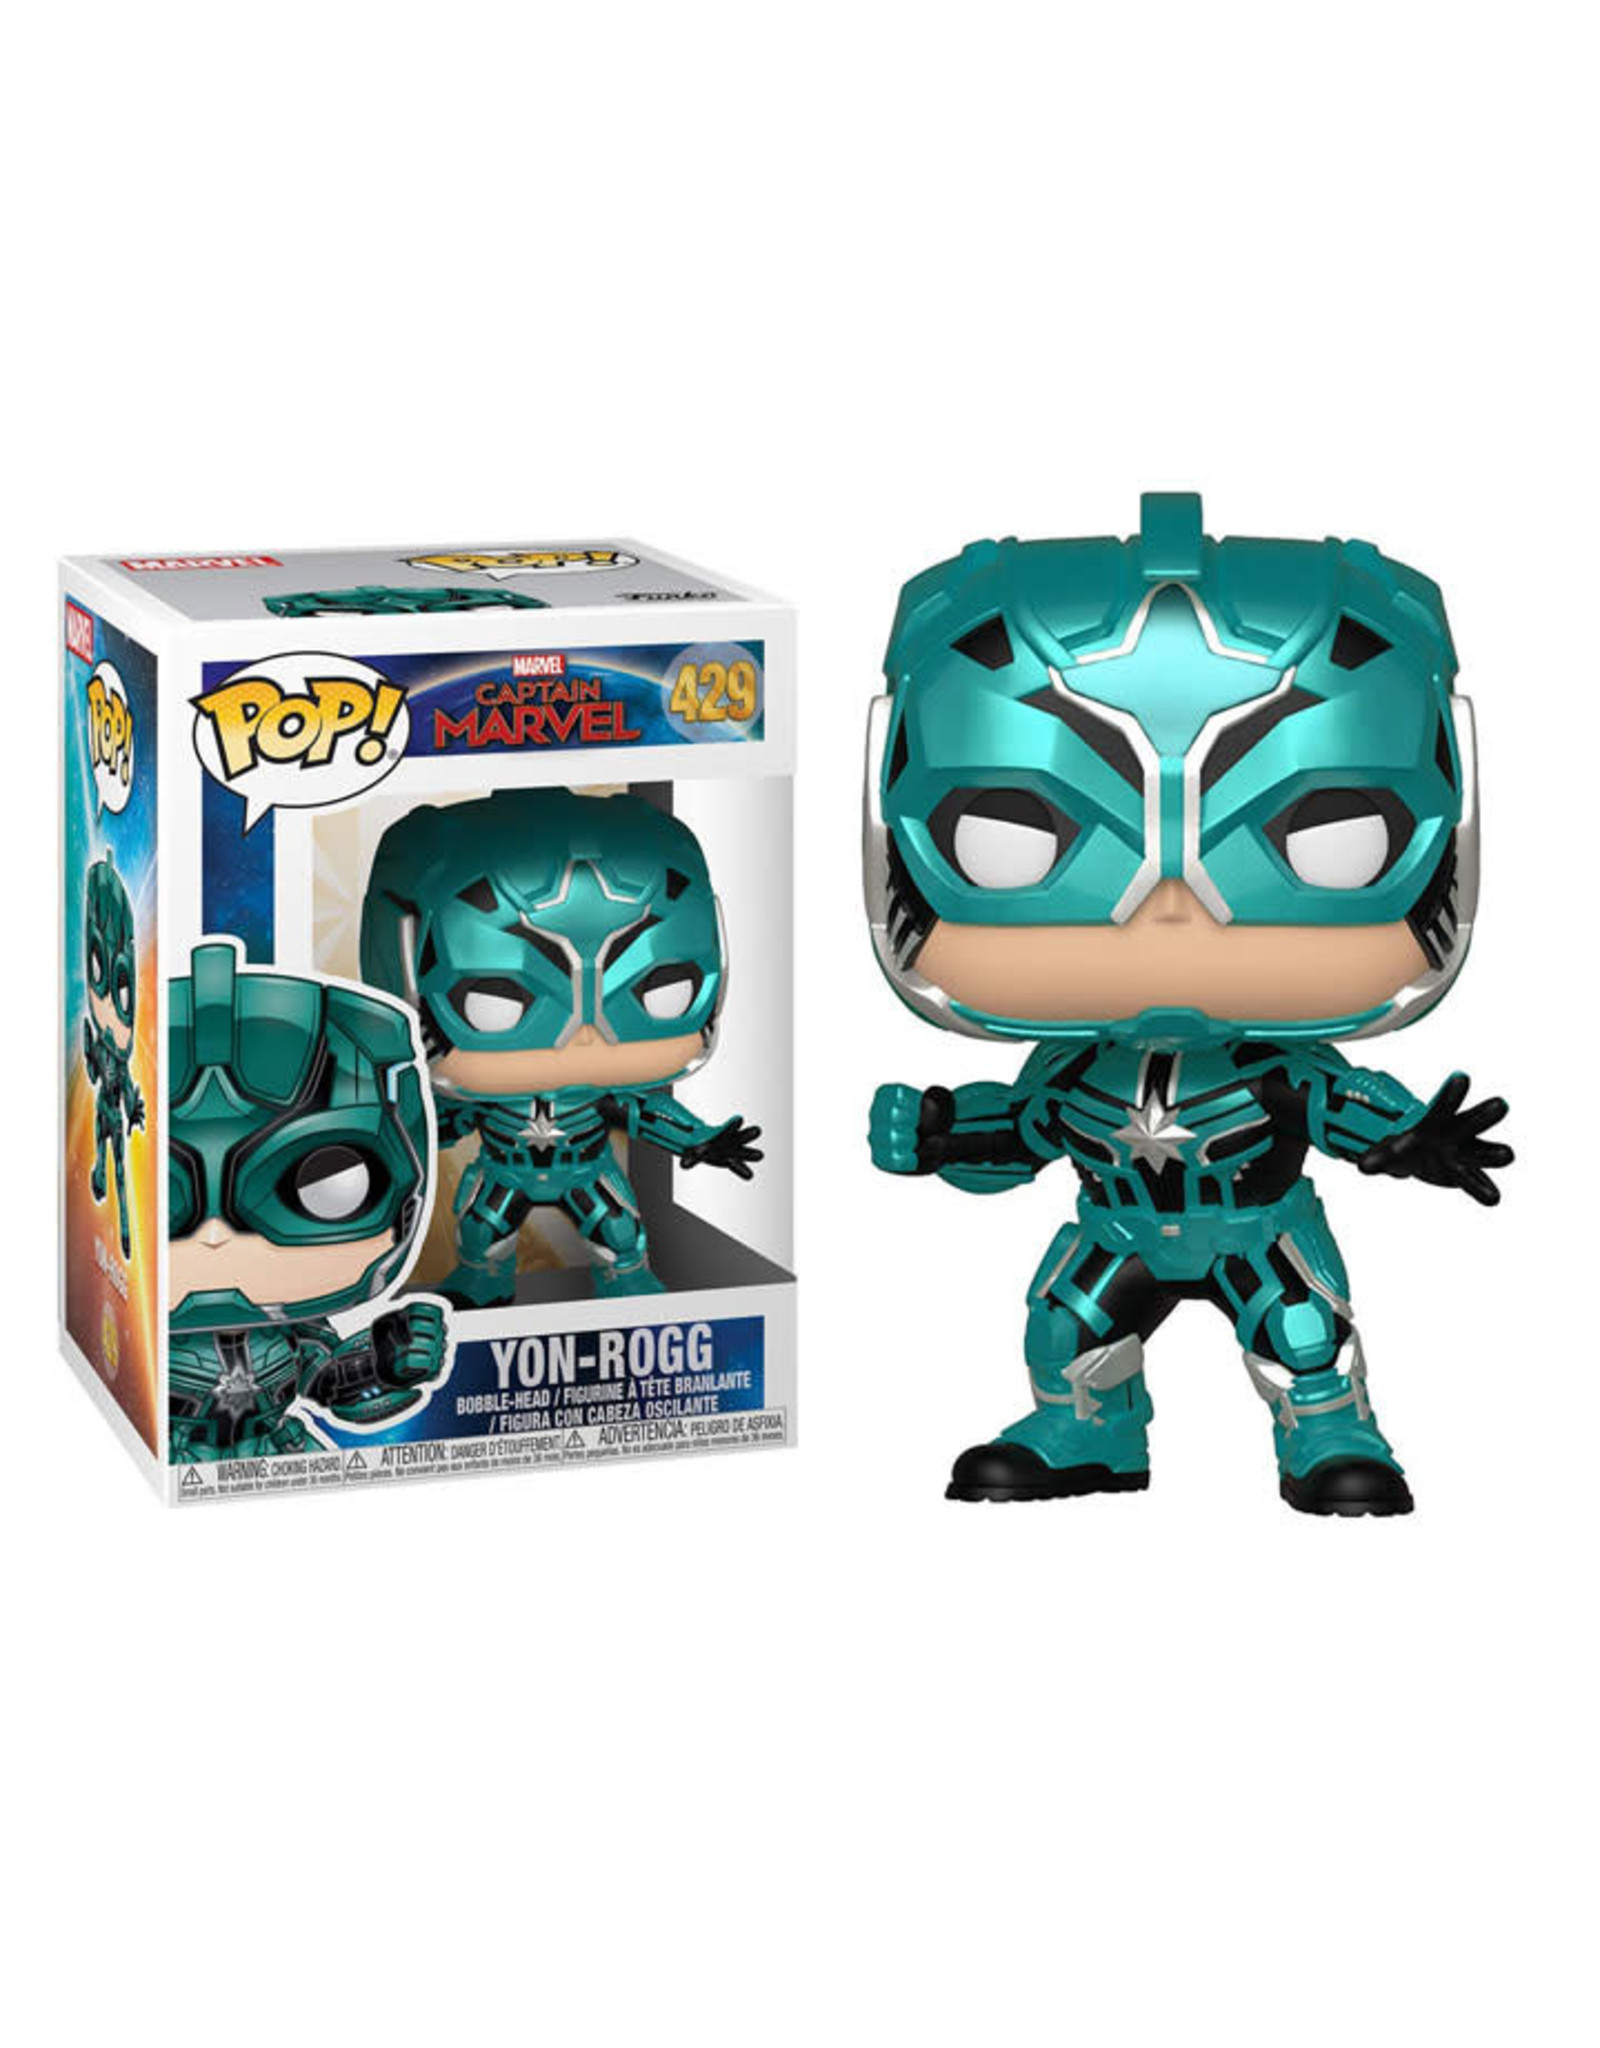 FUNKO POP CAPTAIN MARVEL YON-ROGG VINYL FIG